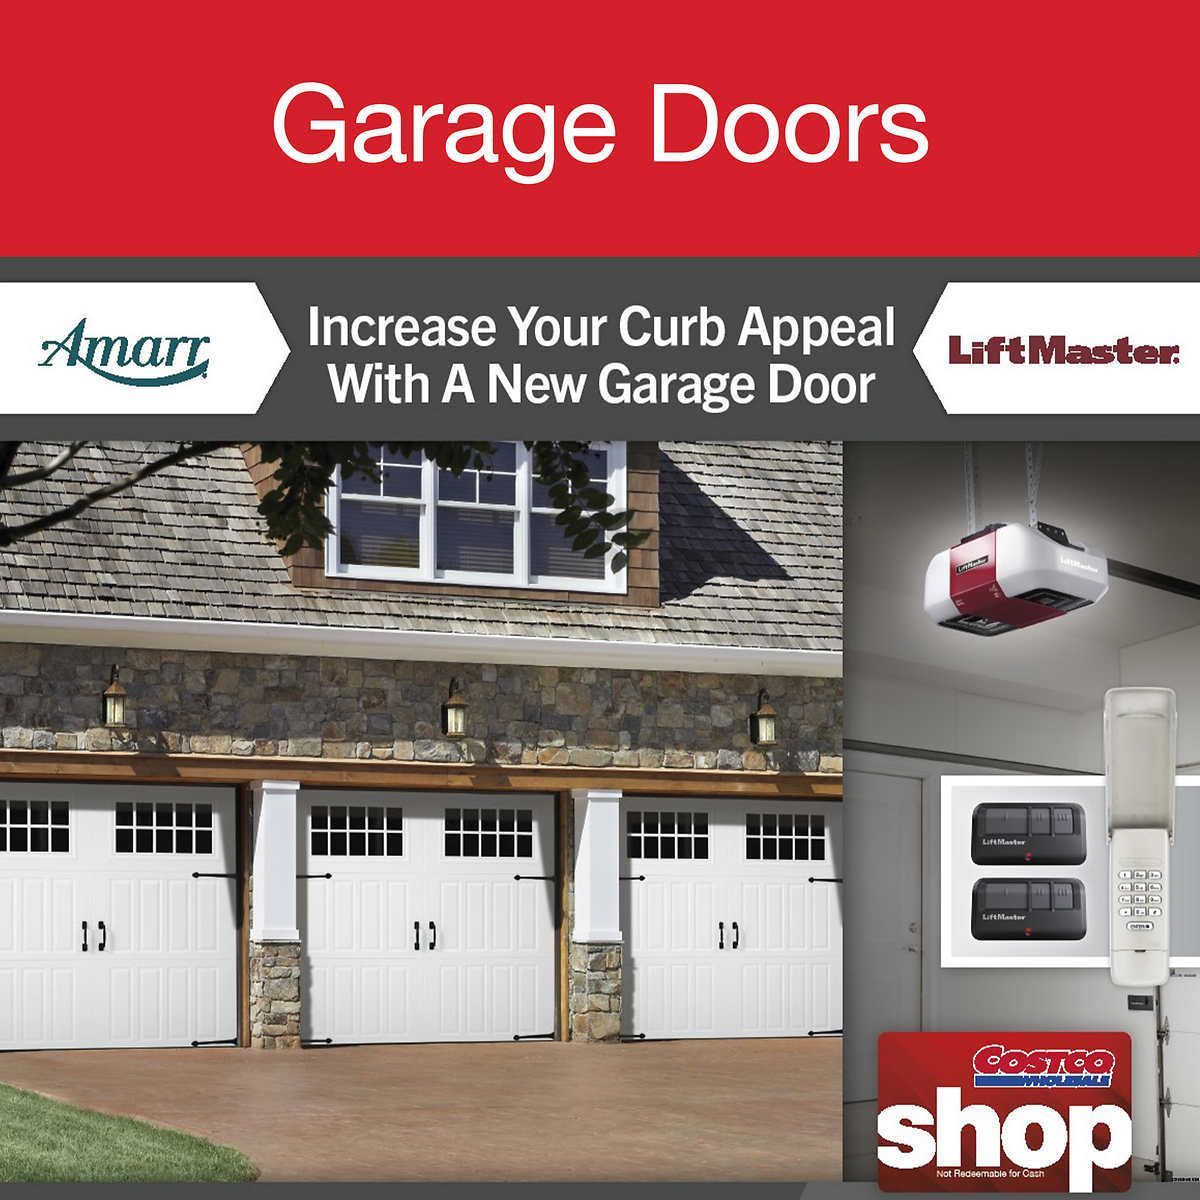 Pin By Shelly Tollinger On For The Home In 2020 Shop Garage Doors Doors Liftmaster Garage Door